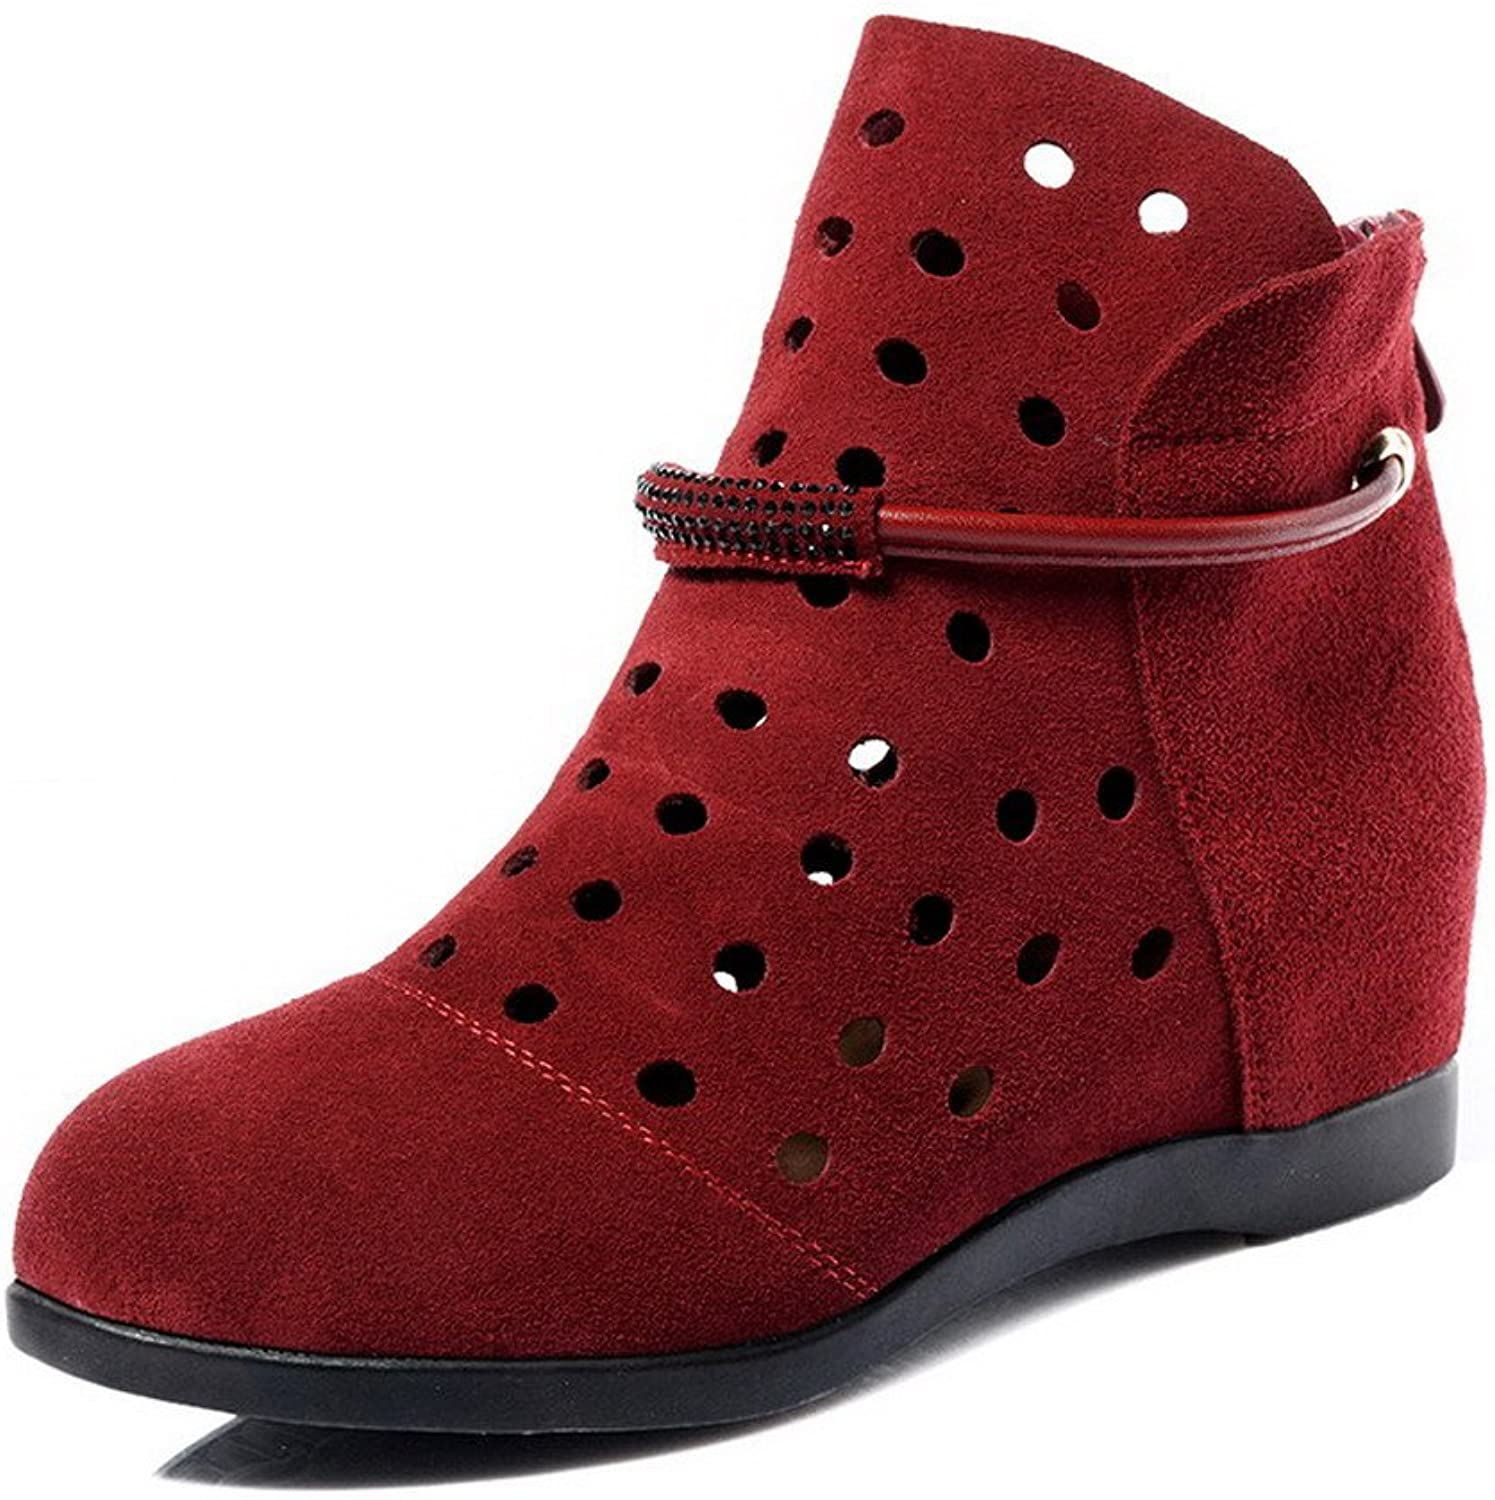 AmoonyFashion Women's Round-Toe Closed-Toe Low-Heels Boots with Hollow Out and Back Zipper